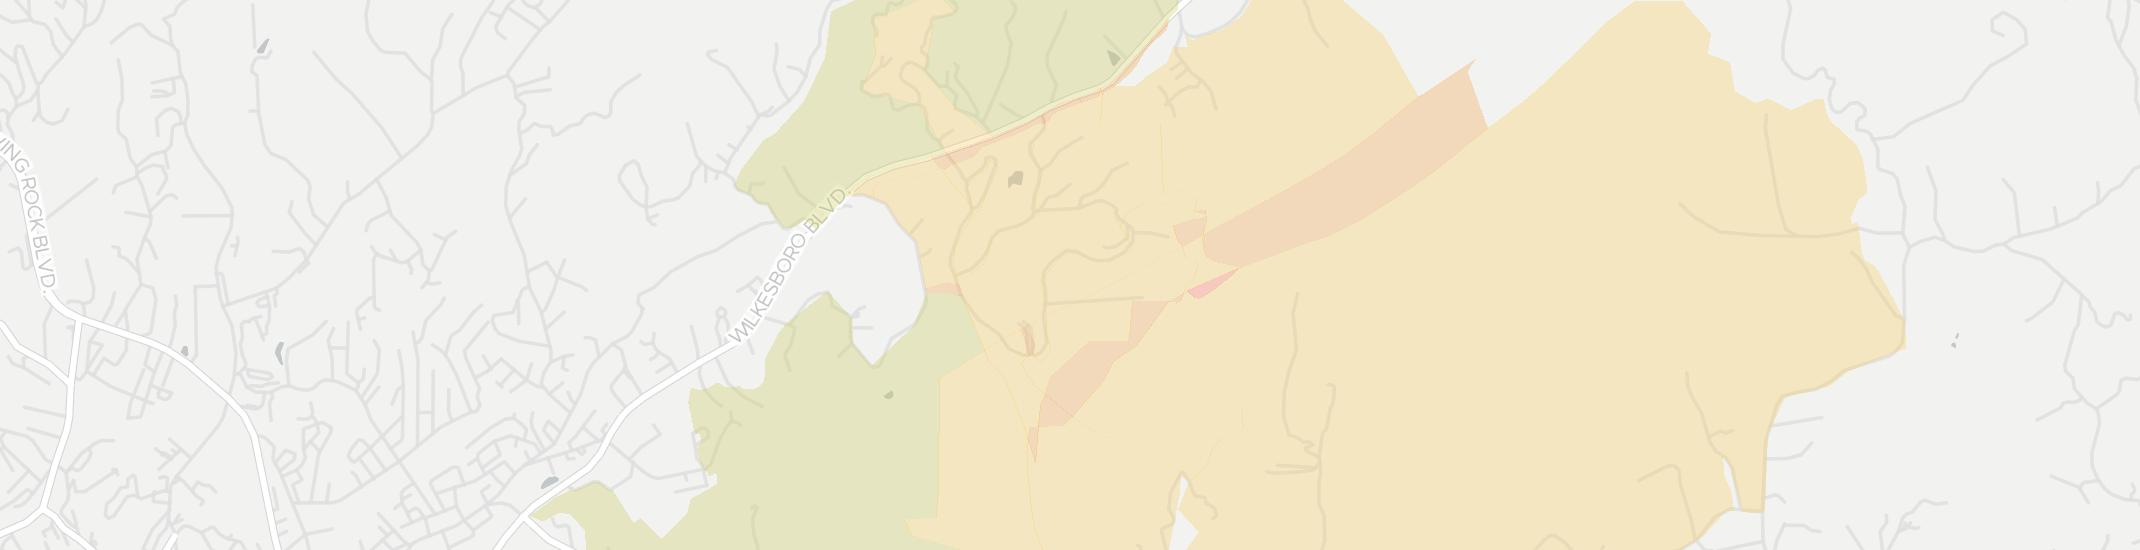 Cedar Rock Internet Competition Map. Click for interactive map.